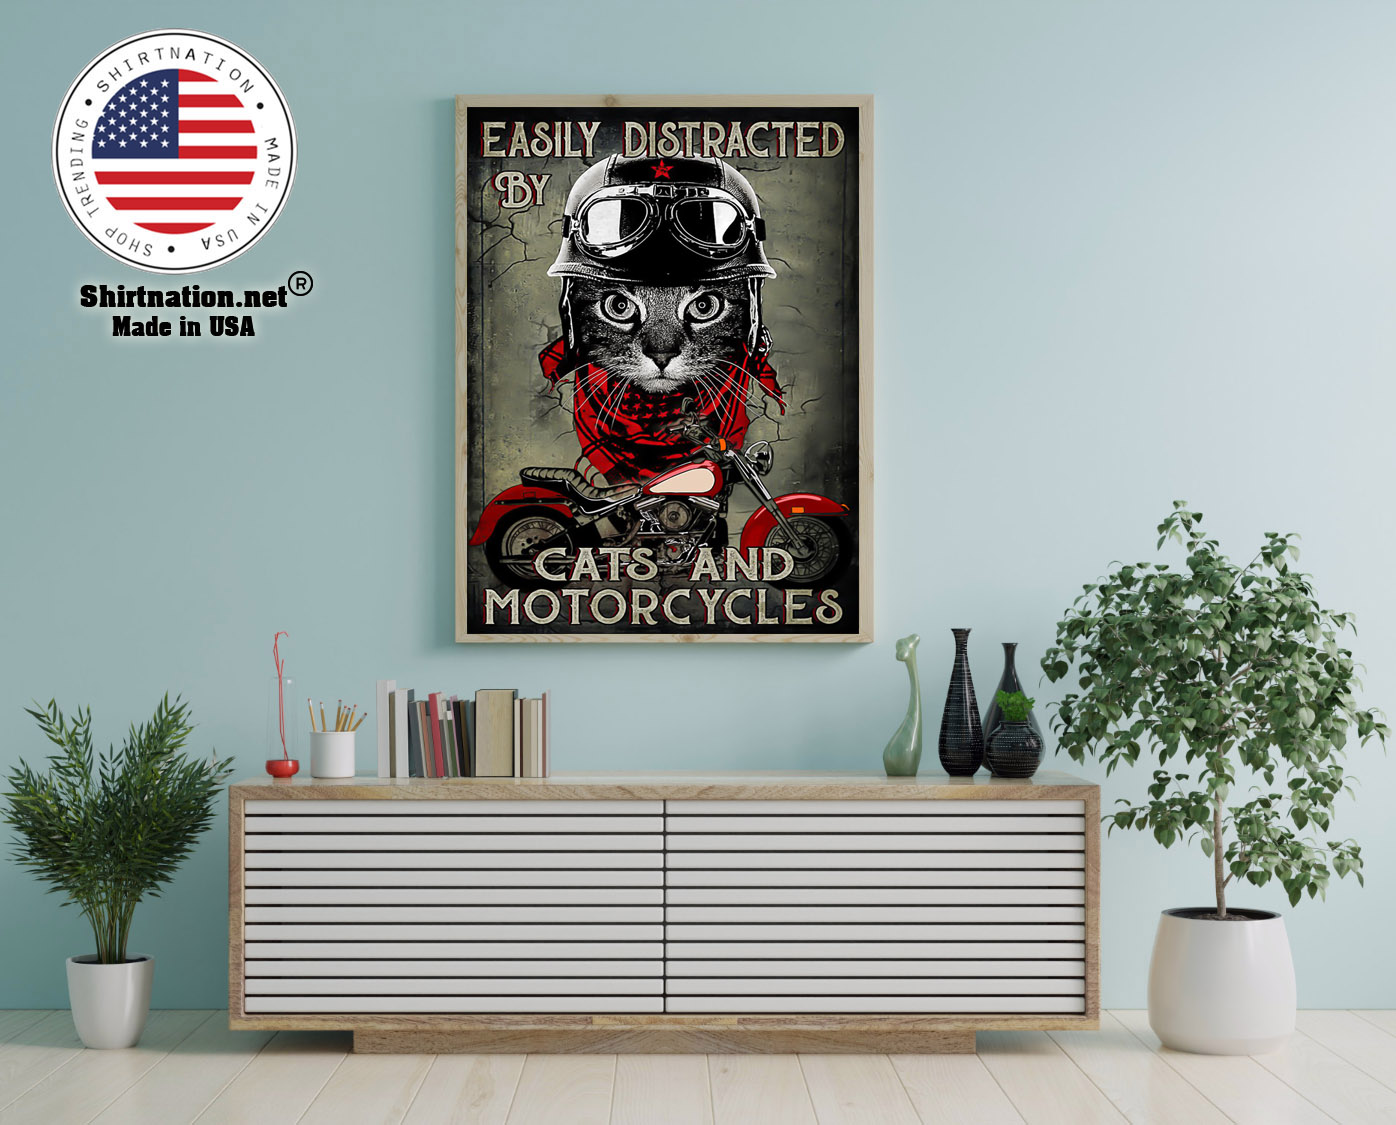 Easily distracted by cats and motorcycles poster 12